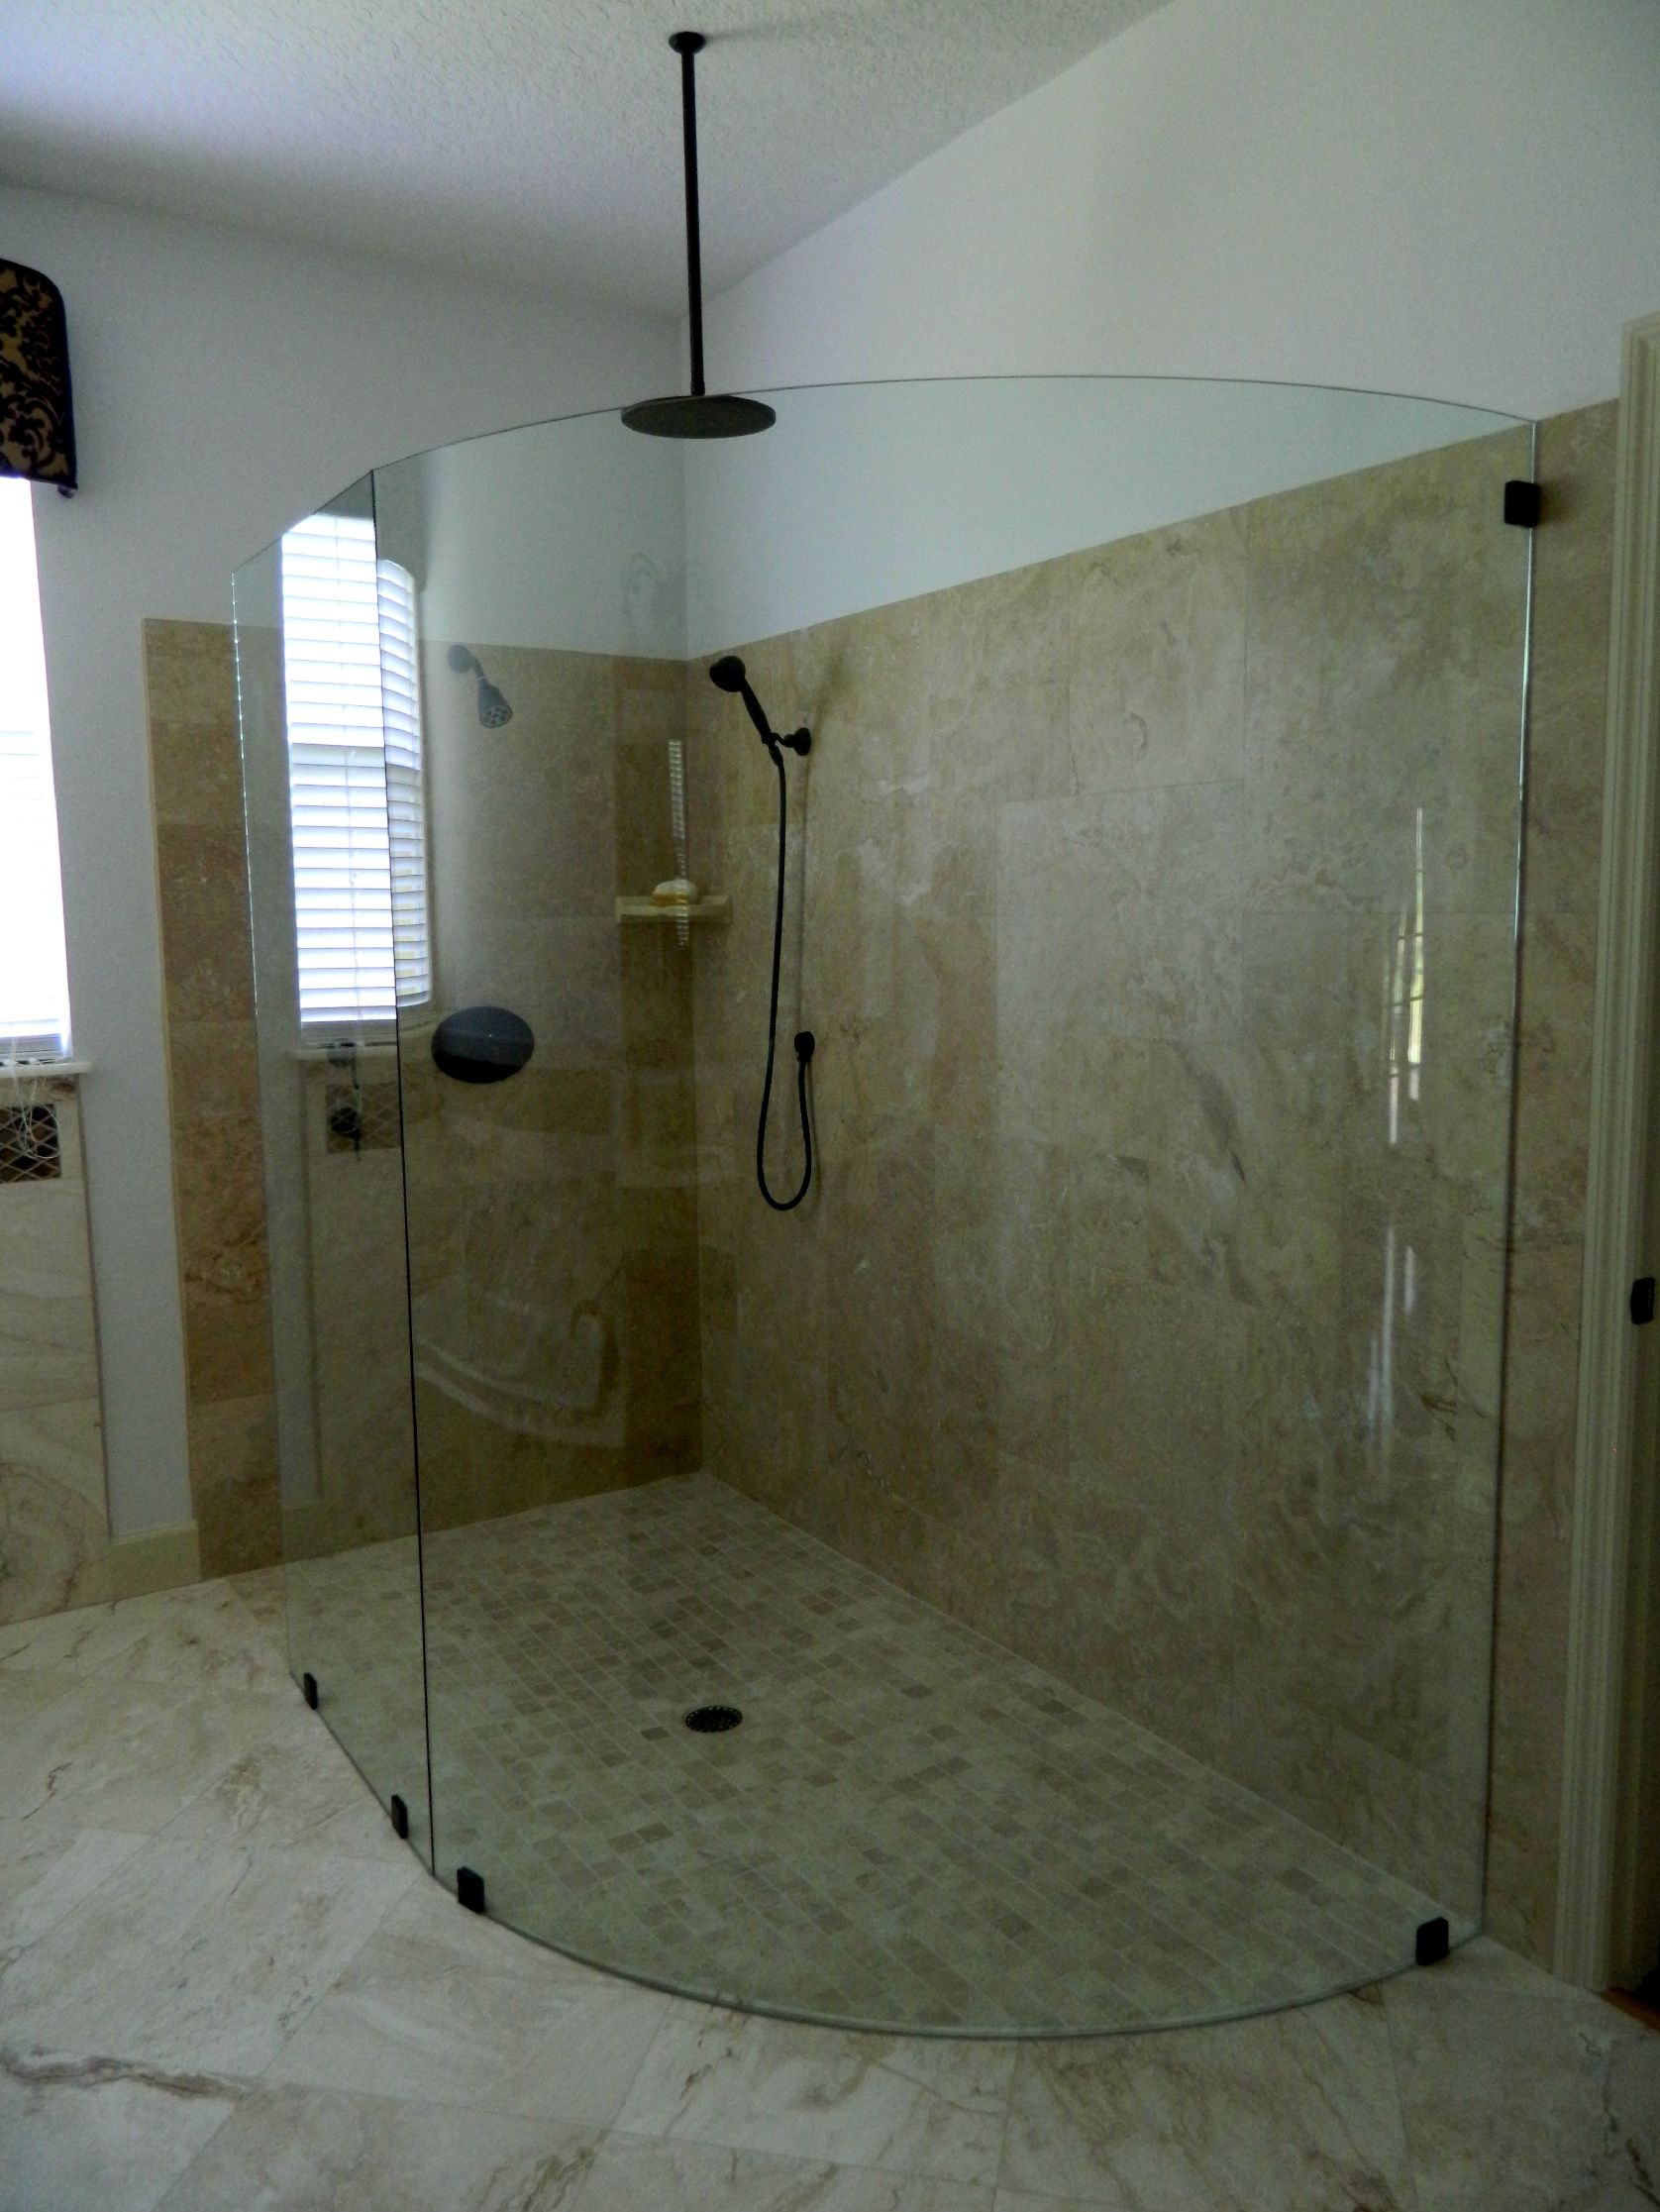 Chudnow Shower after remodel http://www.thekitchensofsk.com/chudnow-bathroom.html